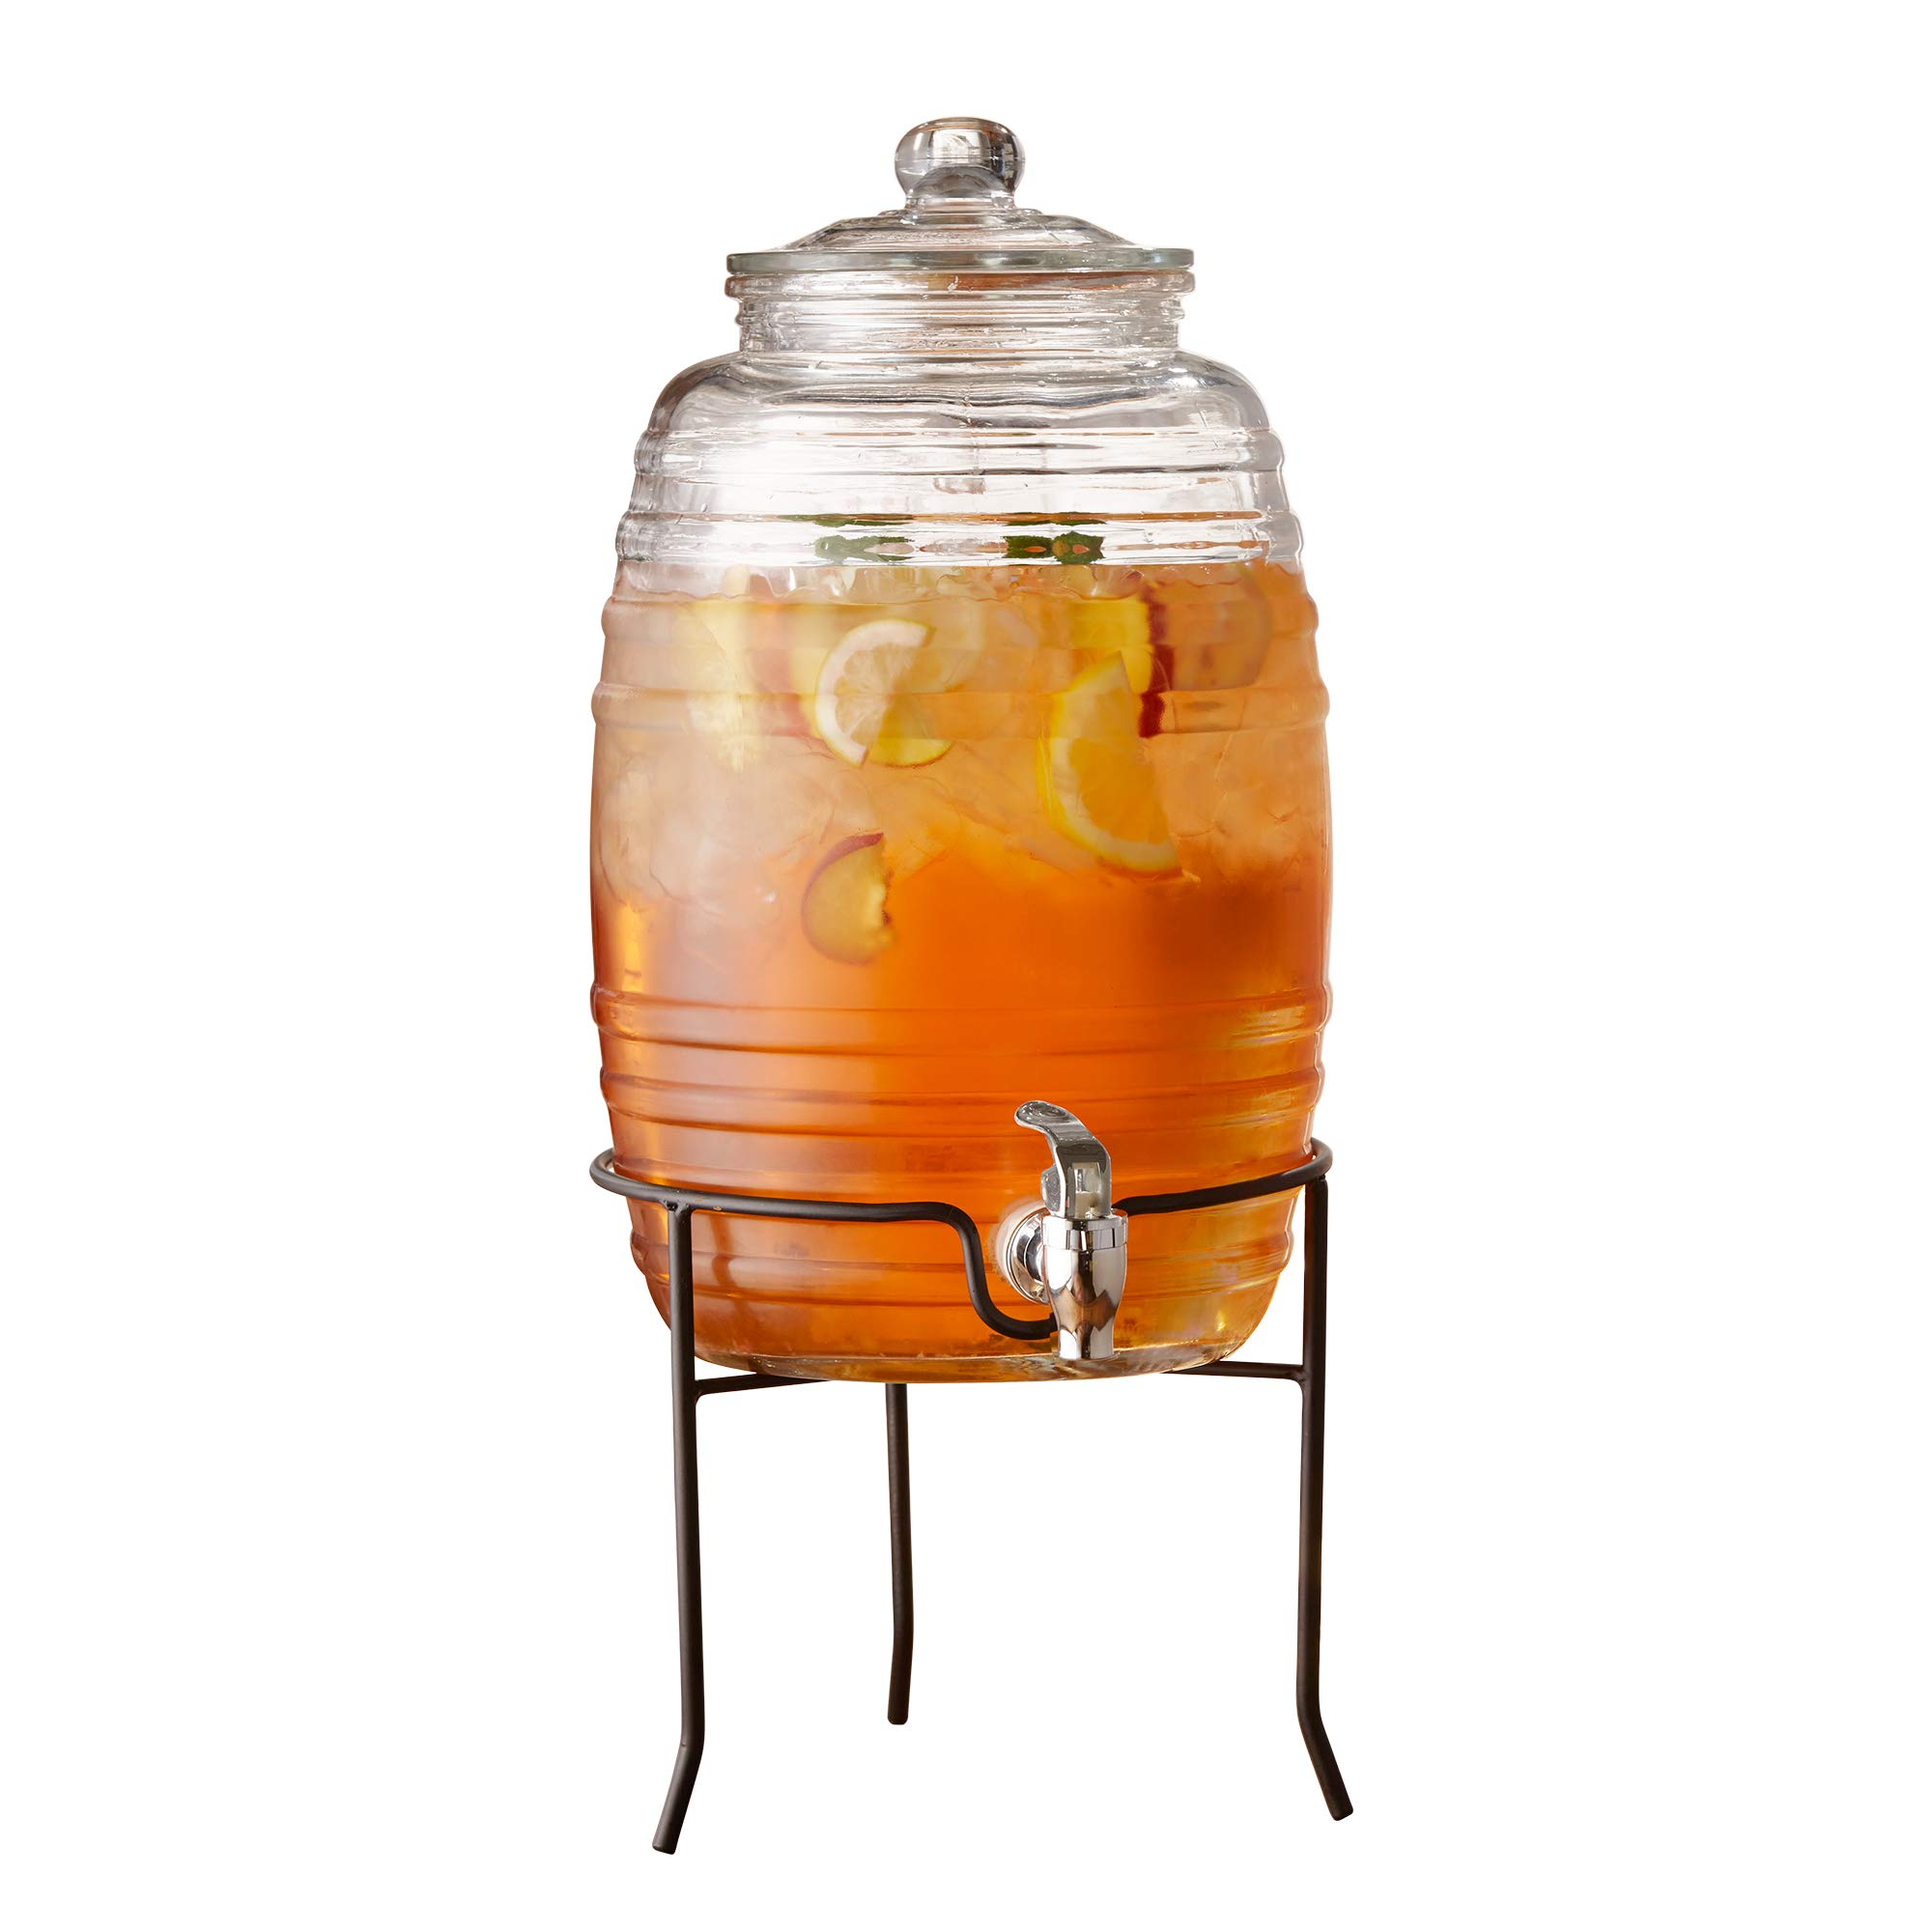 Style Setter Colfax 210323-GB Beverage Dispenser with Stand Cold Drink w 2.5 Gallon Capacity Glass Jug and Leak-Proof Acrylic Spigot in Gift Box for Parties, Weddings, 10x17'', Clear